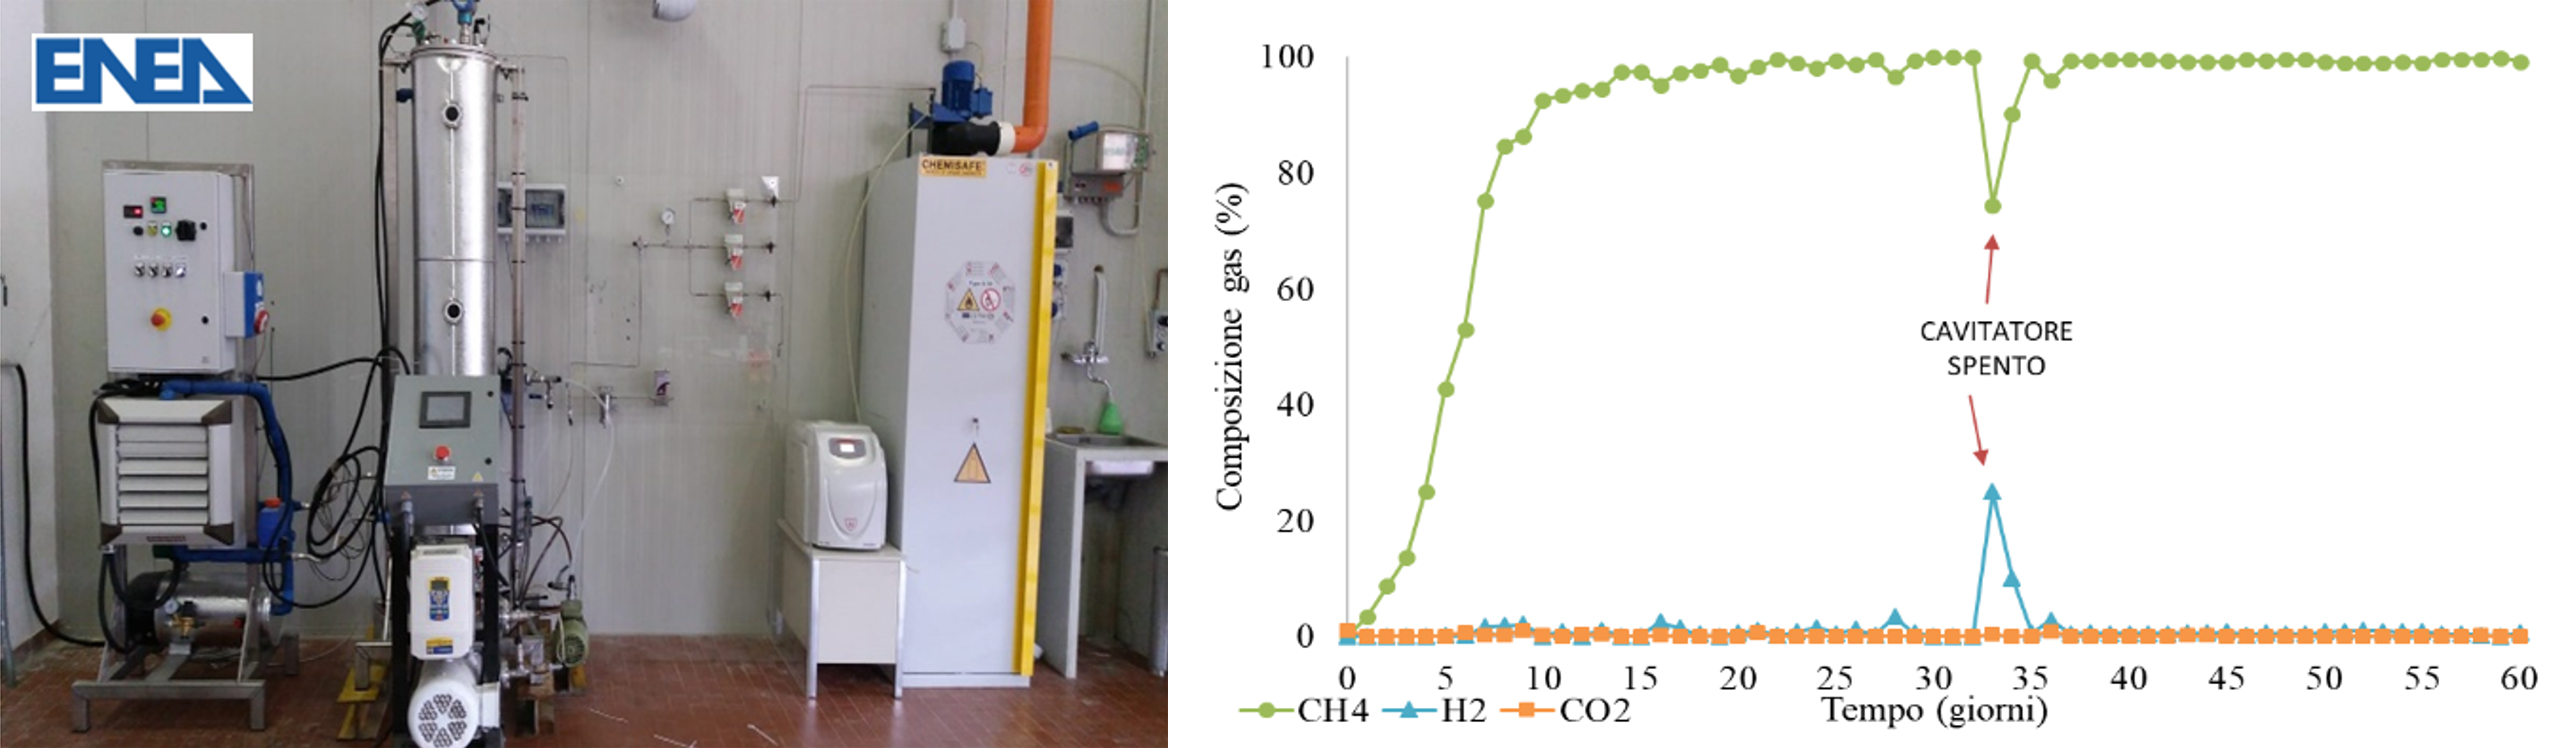 The picture (1a) shows the biological upgrading pilot plant used for the experimental trials. The plot (1b) shows the time profile of the outlet gas composition (H2, CO2, CH4) recorded during the experimentation. In particular, the trend shows that the CH4 content in the gas produced by the biological reactor is steadily higher than 98%, as a result of the biological conversion of gaseus substrates (CO2 and H2) .